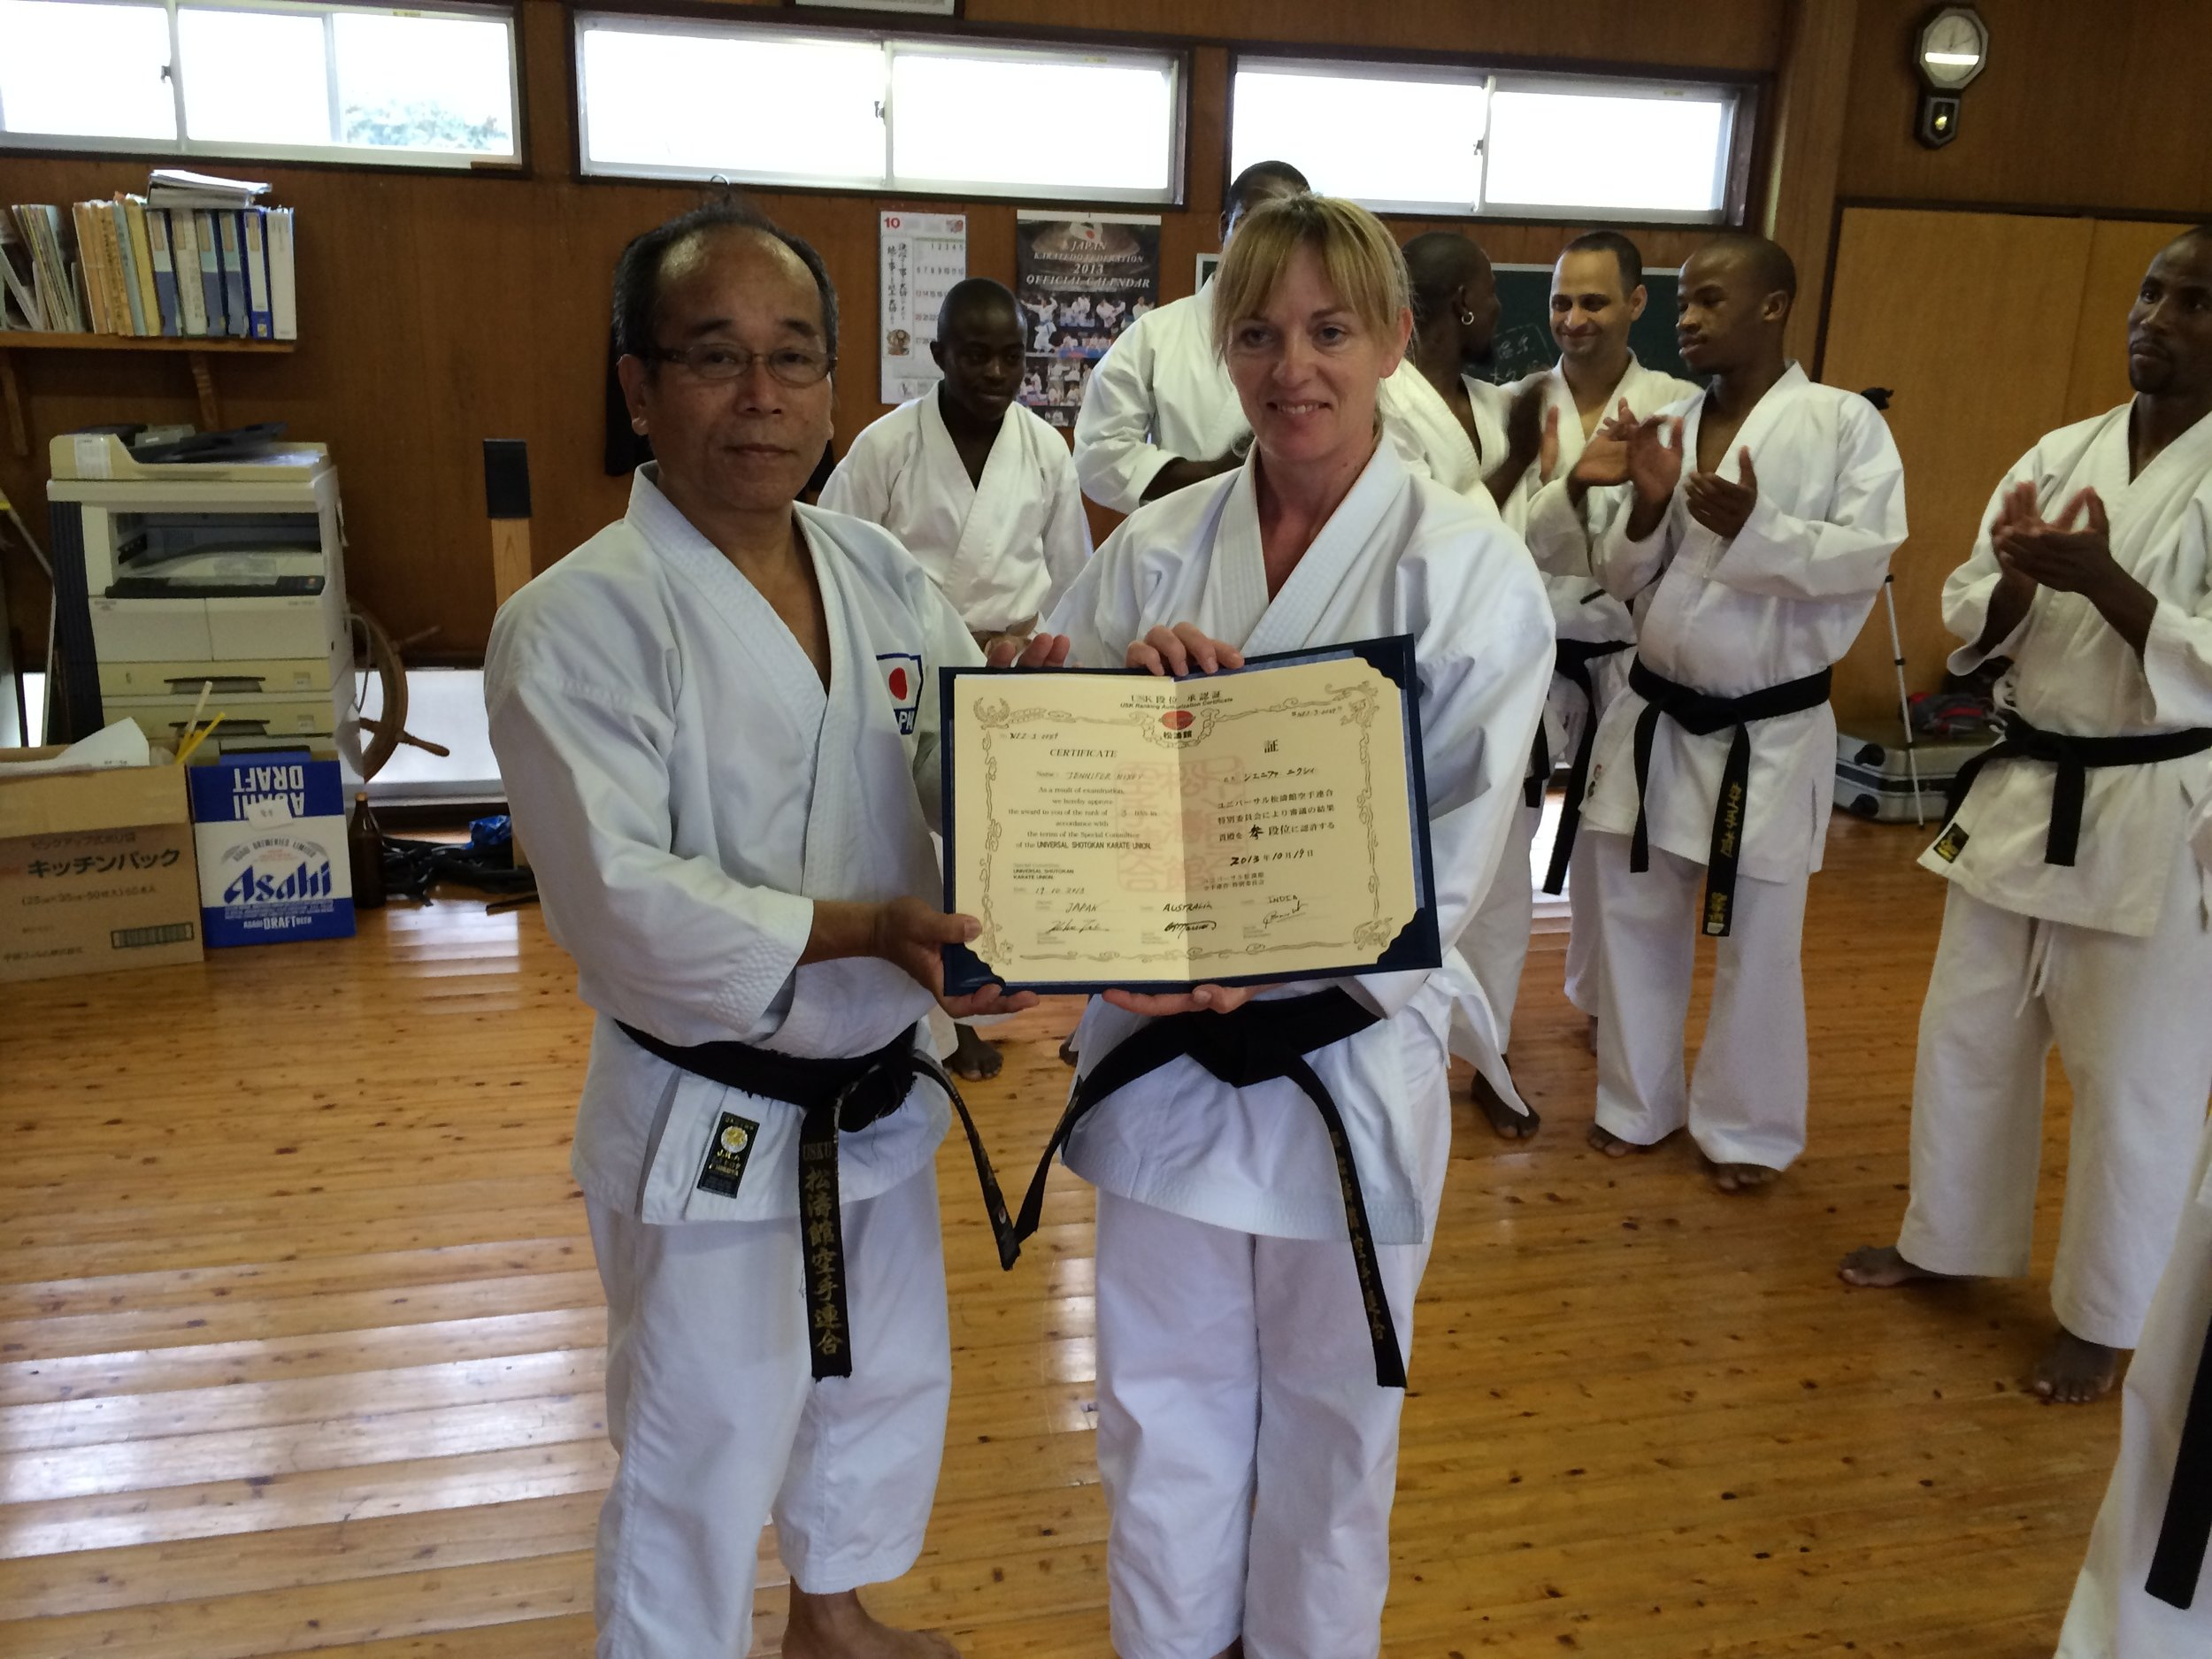 Jenny Nixey is awarded Sandan (third degree black belt) having successfully graded in Miyazaki, Japan.